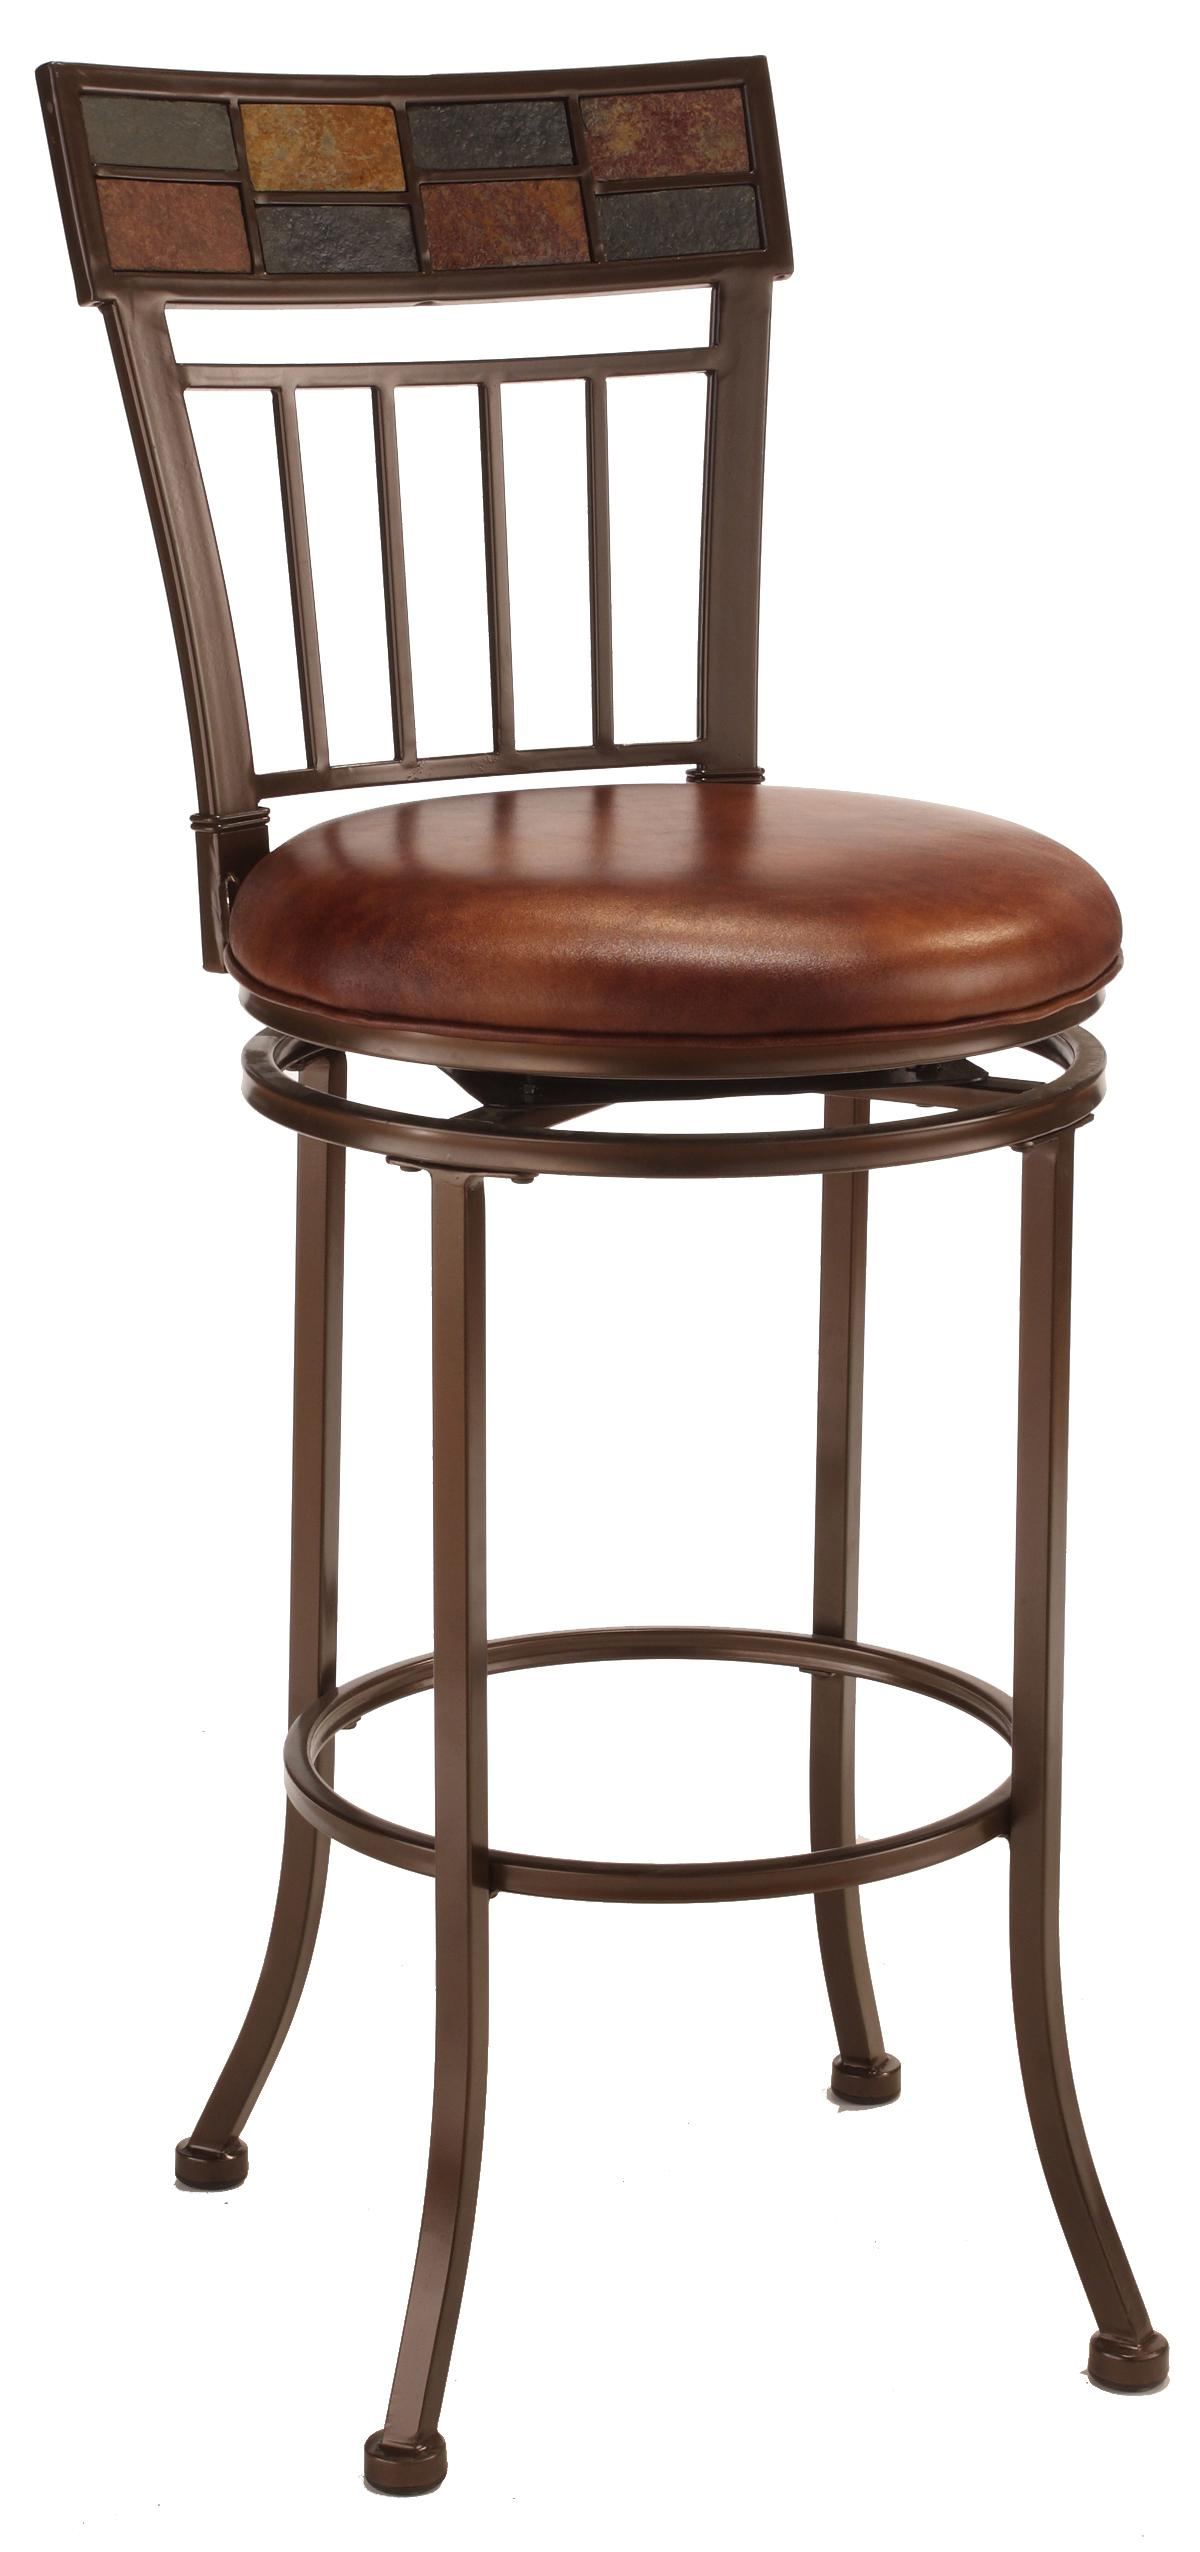 "Hillsdale Metal Stools 30"" Bar Height Montero Stool - Item Number: 4266-830"